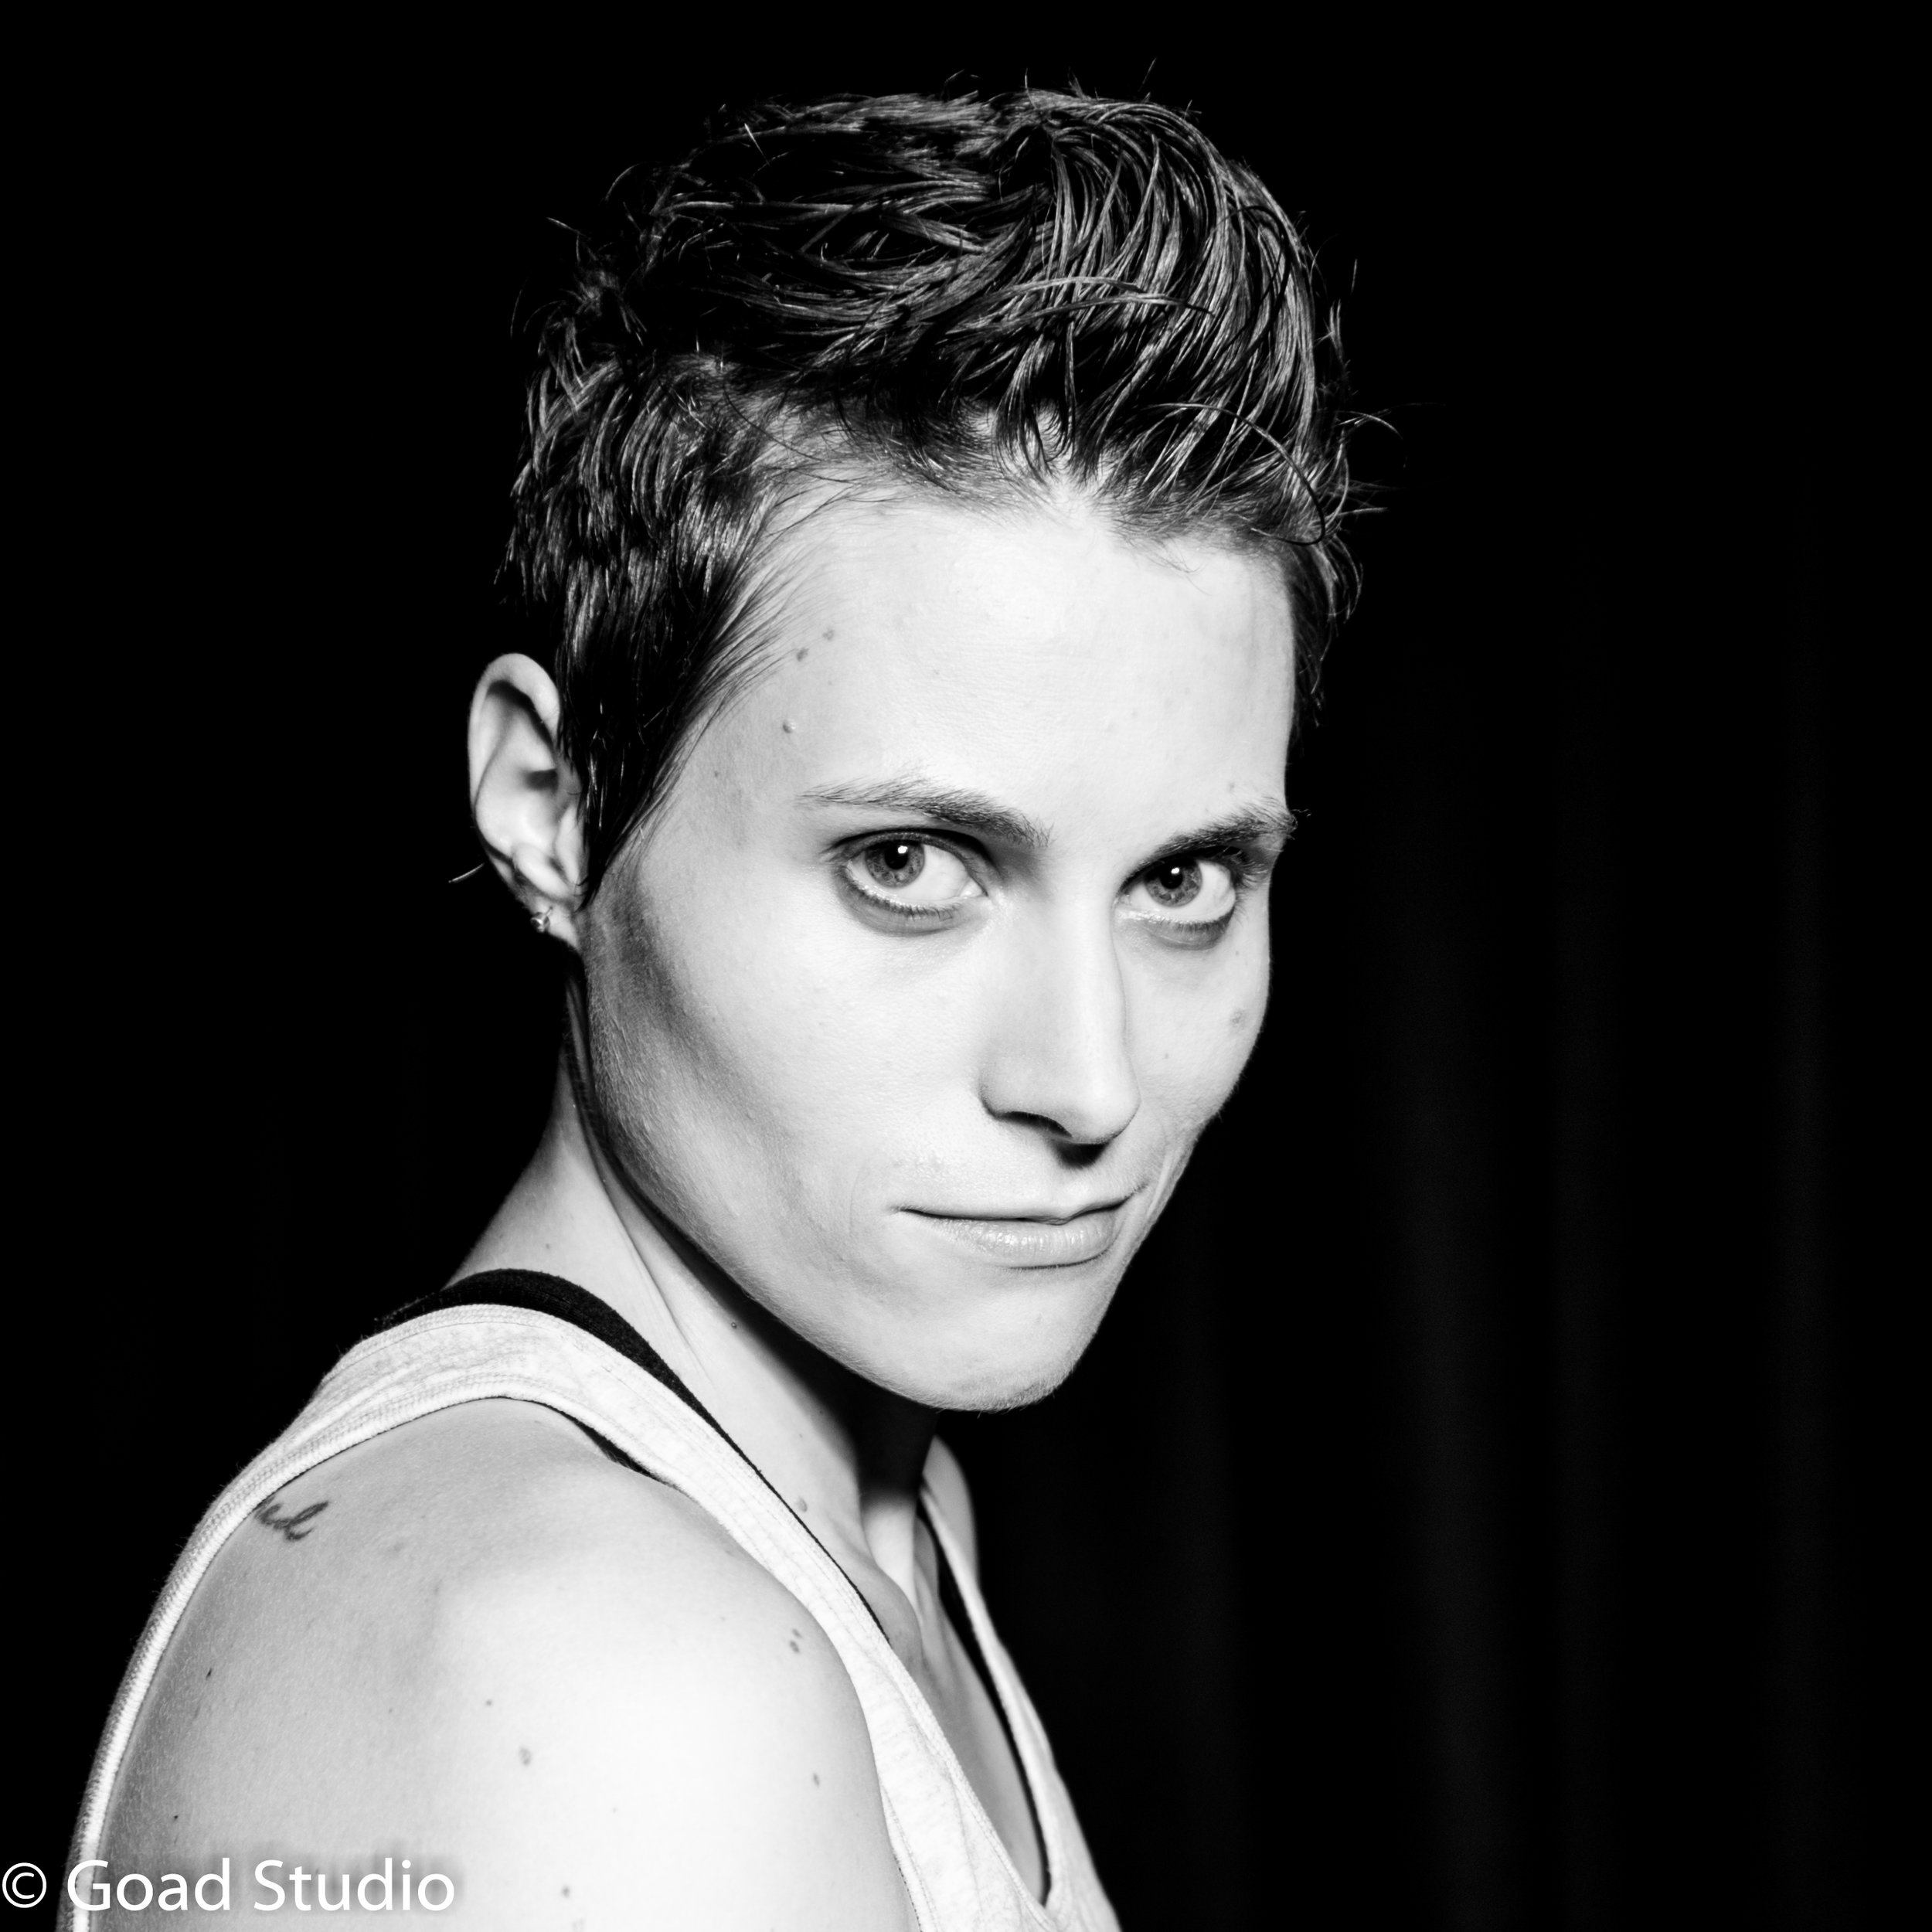 Mx. Ren Lunicke - is a trans non-binary/genderqueer* performer.Although their humble roots stretch into the great bio-region of Cascadia straddling Canada and the US, they are based in New Zealand and perform internationally. Ren's highly energetic and raw autobiographical solo plays and comedy mine personal experience, sub-pop-culture, politics, psychology, philosophy, and spirituality to connect audiences to themselves, the